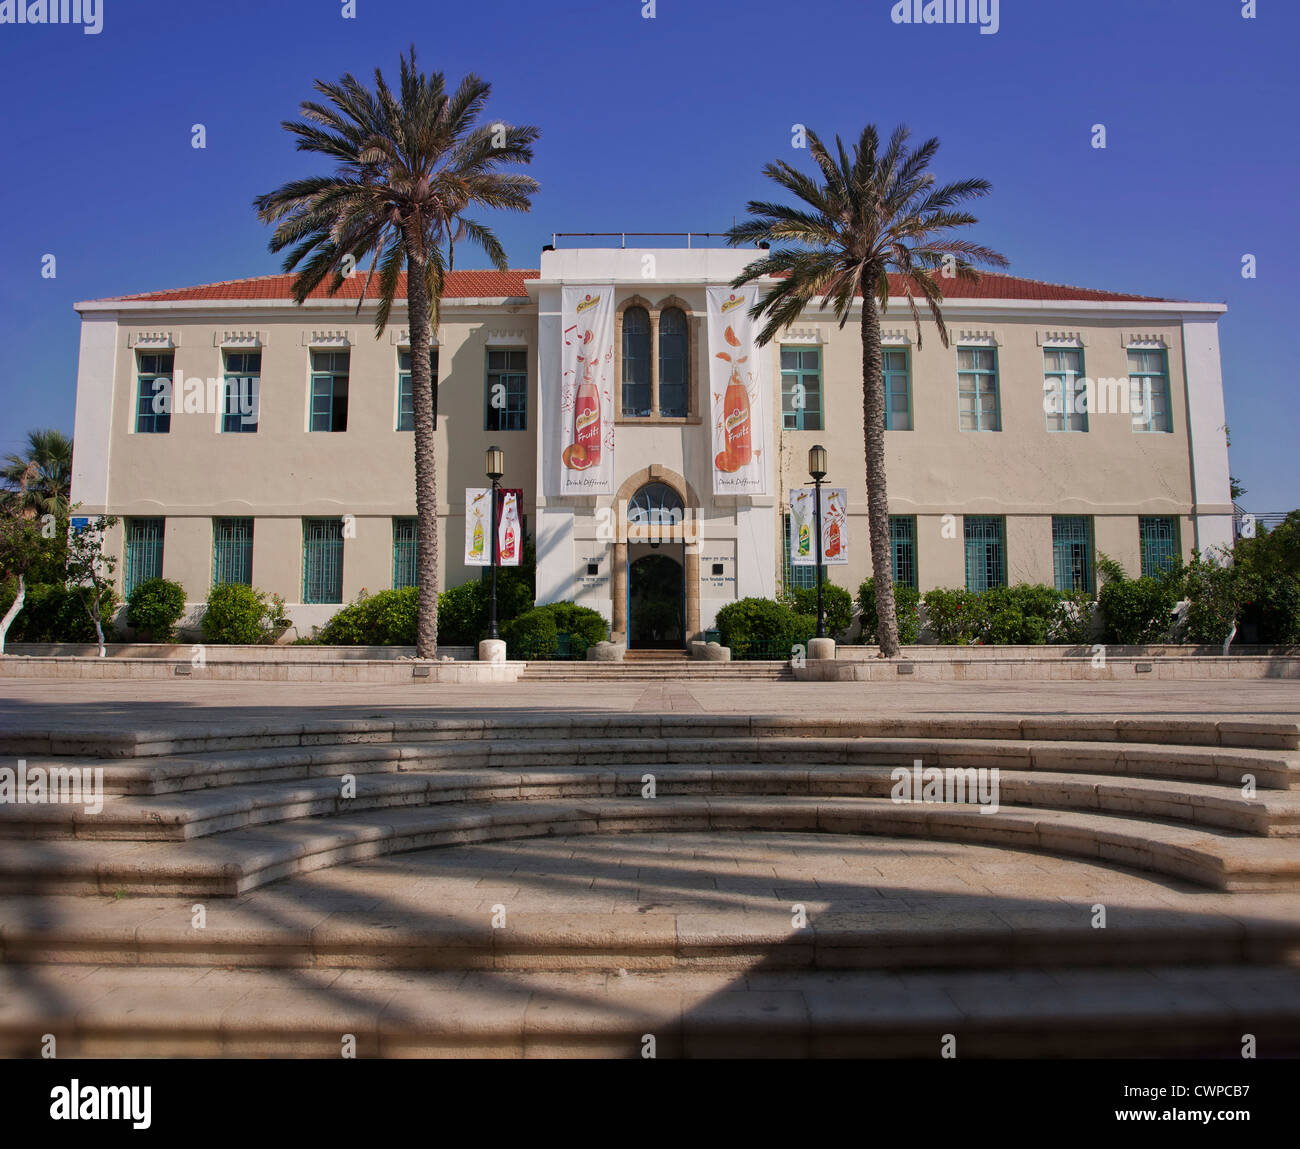 Middle East. Israel. Tel Aviv. The Suzanne Dellal Centre for Dance and Theatre (Batsheva Dance Company). Stock Photo